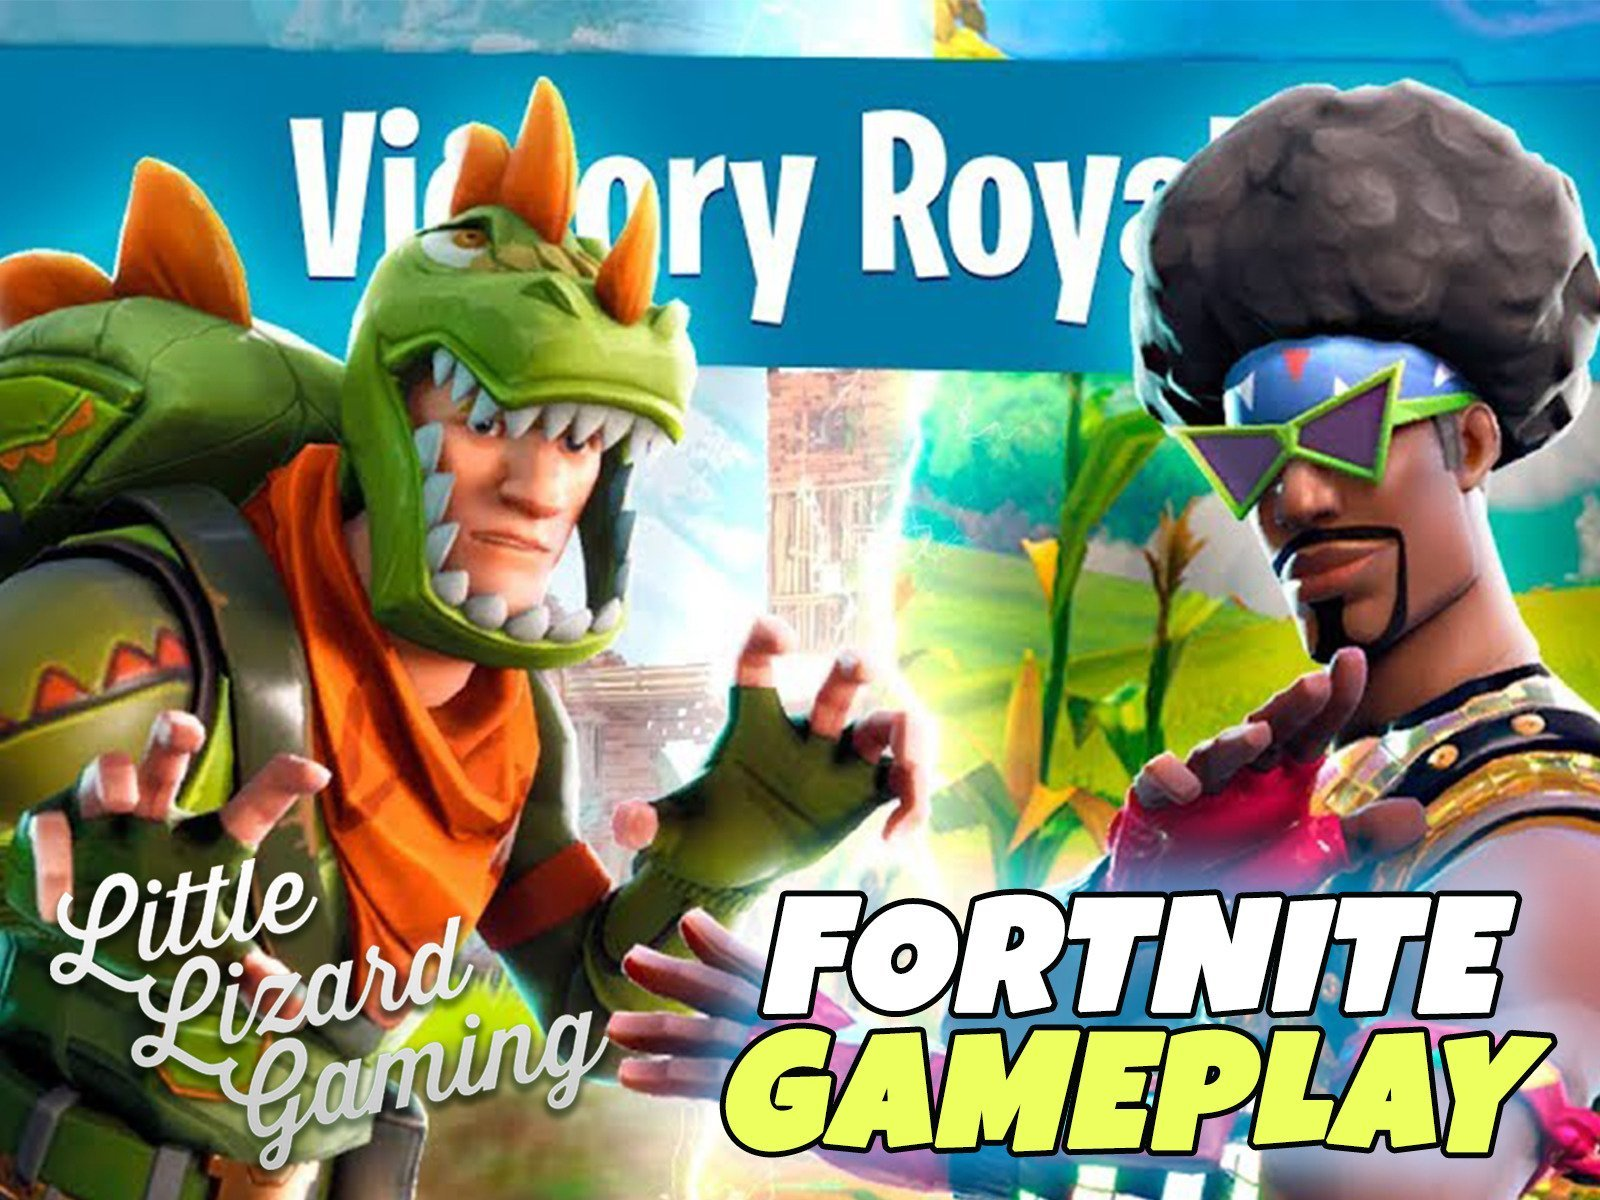 Amazon.com: Watch Clip: Little Lizard Gaming - Fortnite ...